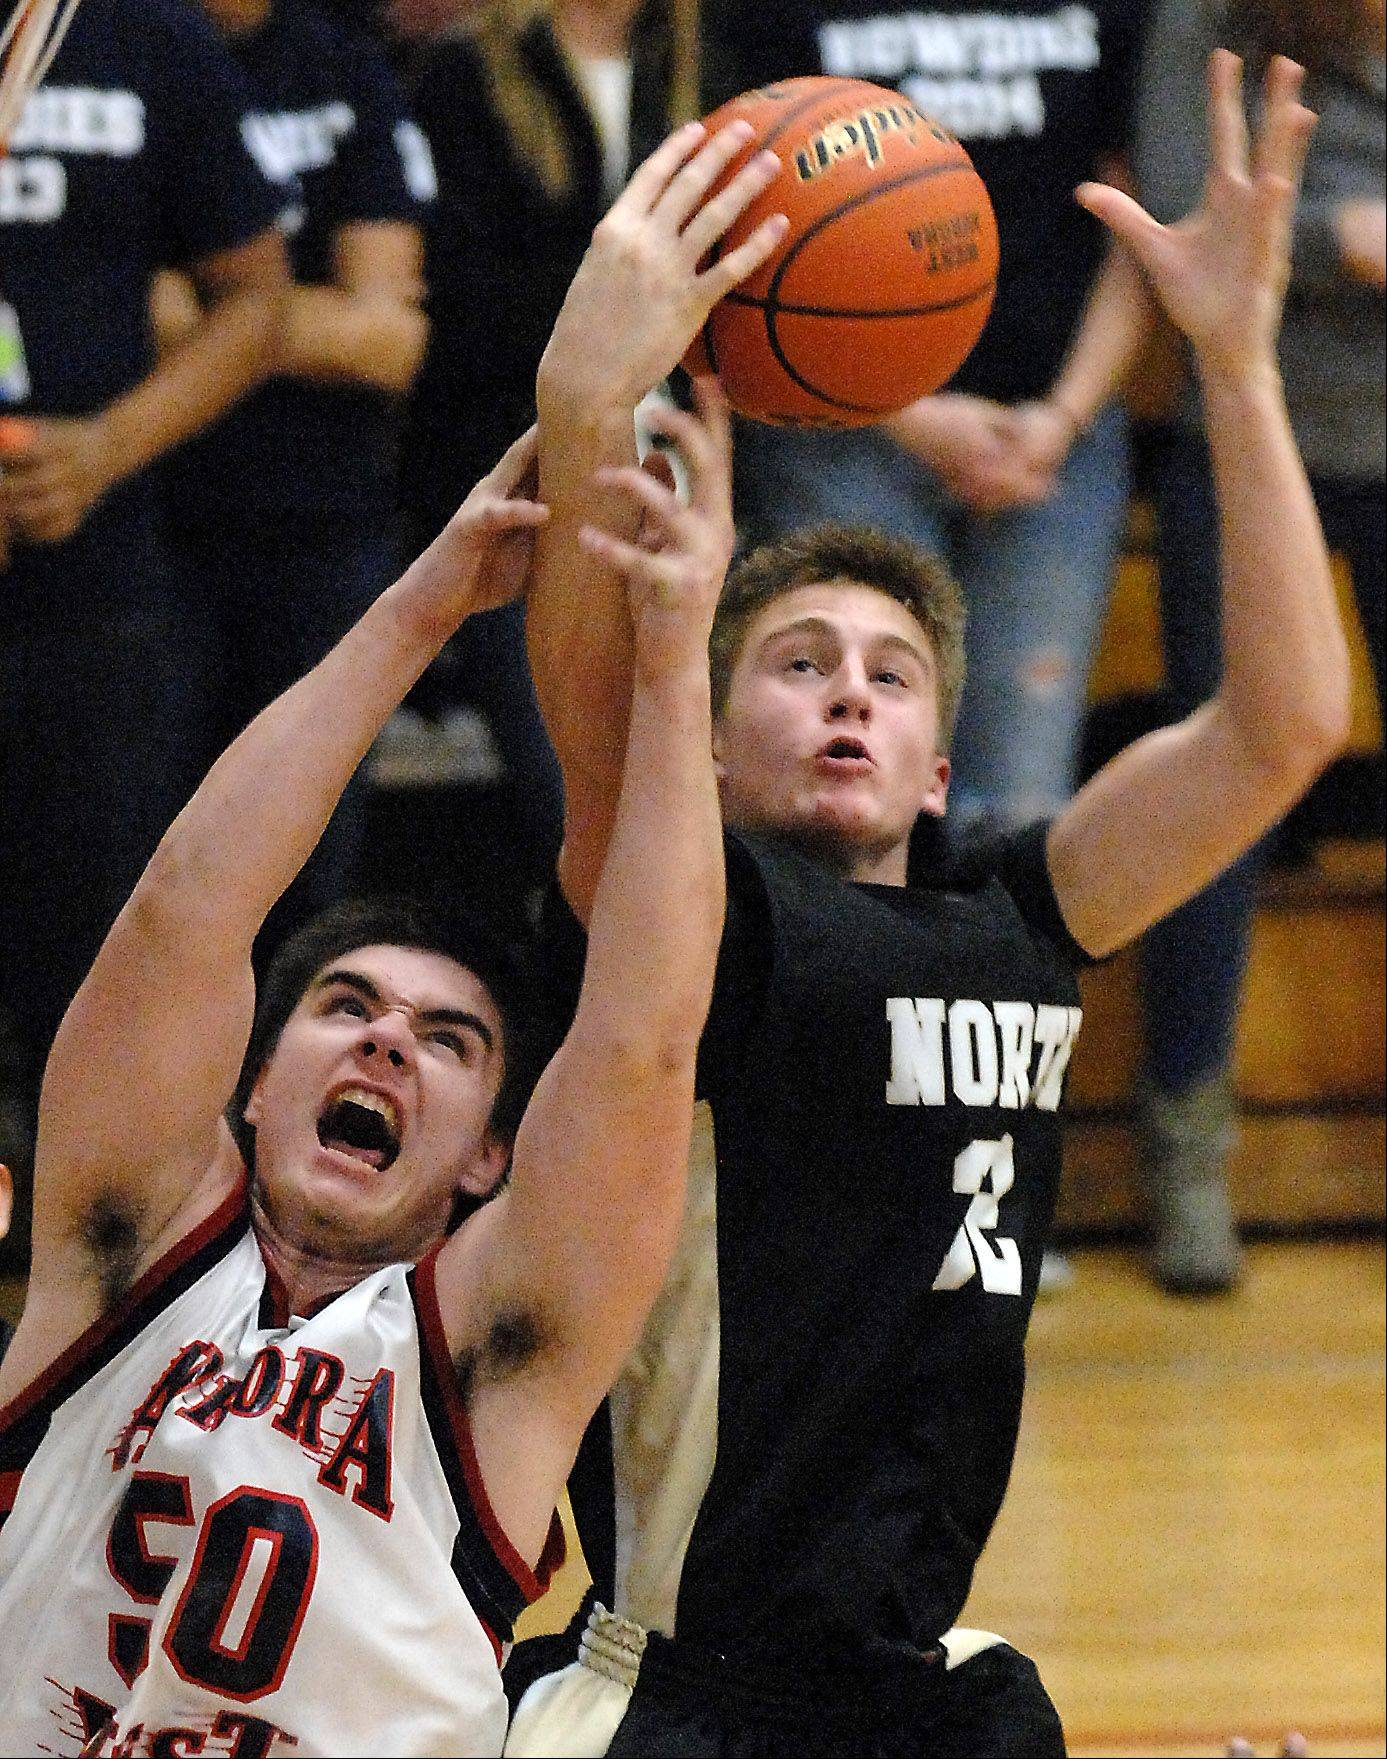 West Aurora's Chandler Thomas battles for a rebound with Glenbard North's Brett Gasiorowski.